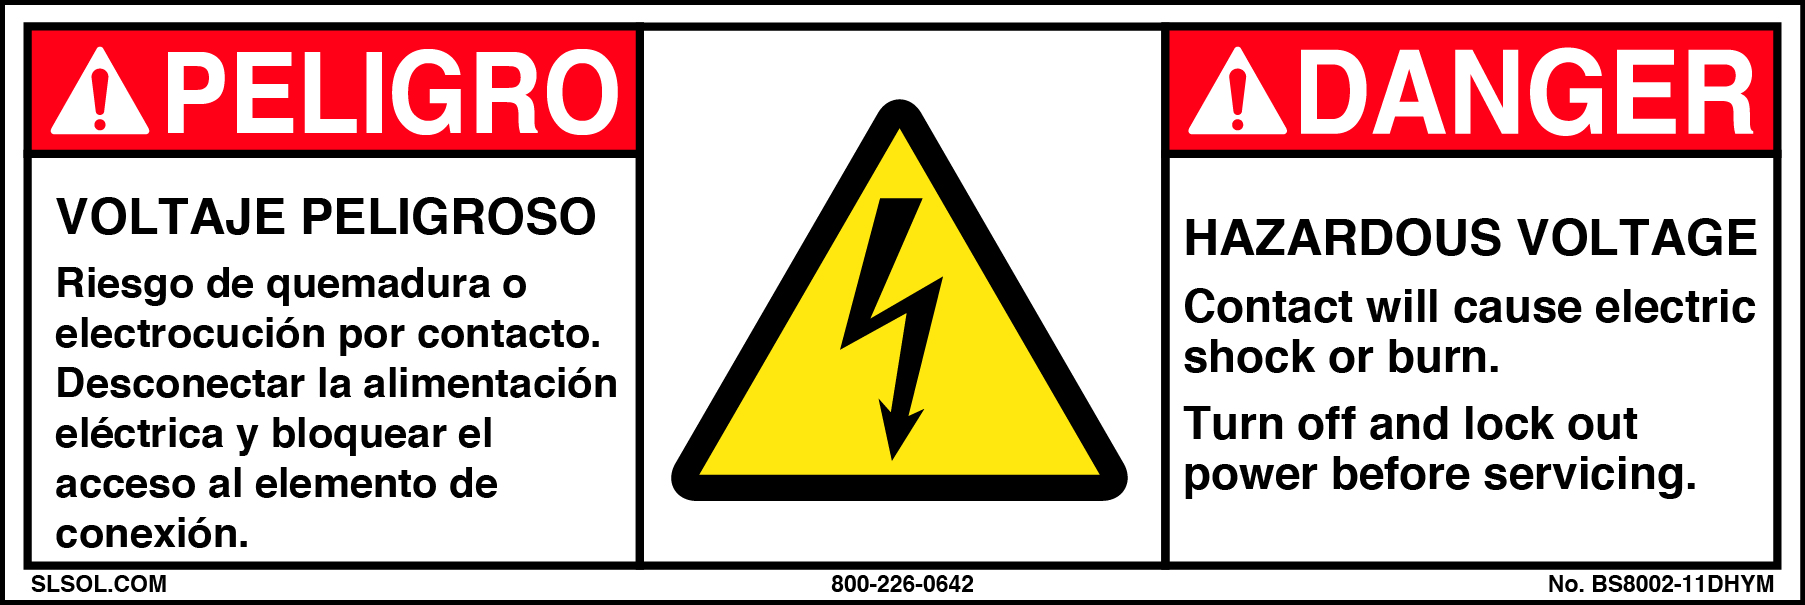 Danger Hazardous Voltage